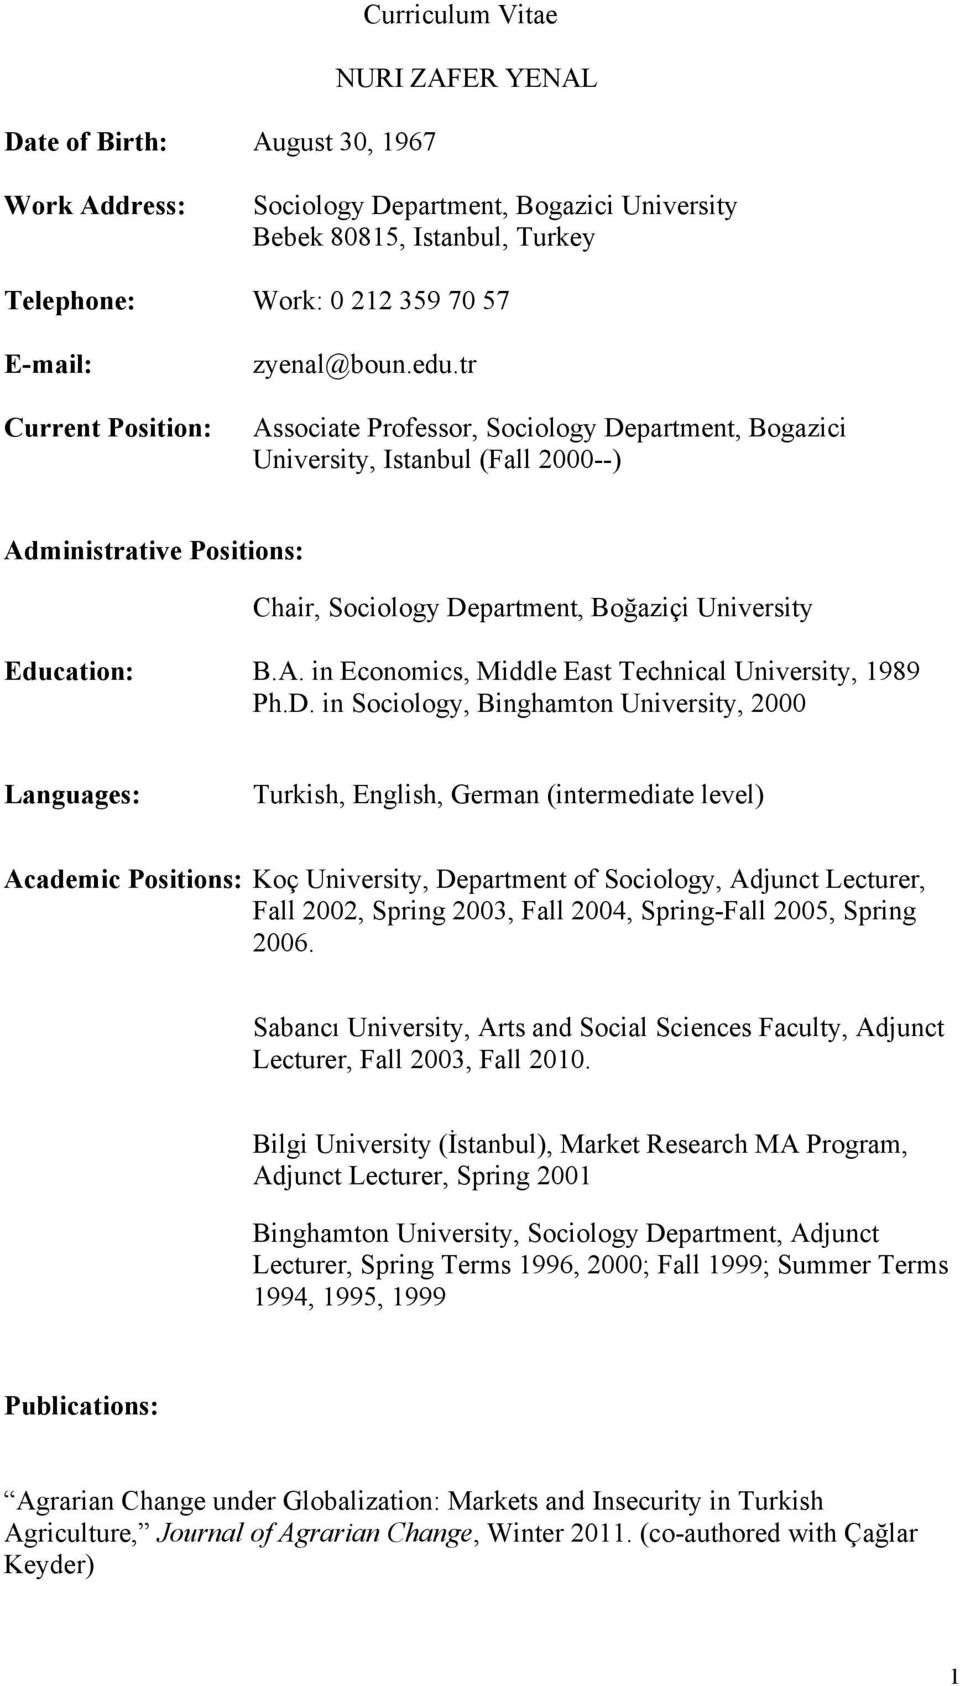 tr Associate Professor, Sociology Department, Bogazici University, Istanbul (Fall 2000--) Administrative Positions: Chair, Sociology Department, Boğaziçi University Education: B.A. in Economics, Middle East Technical University, 1989 Ph.